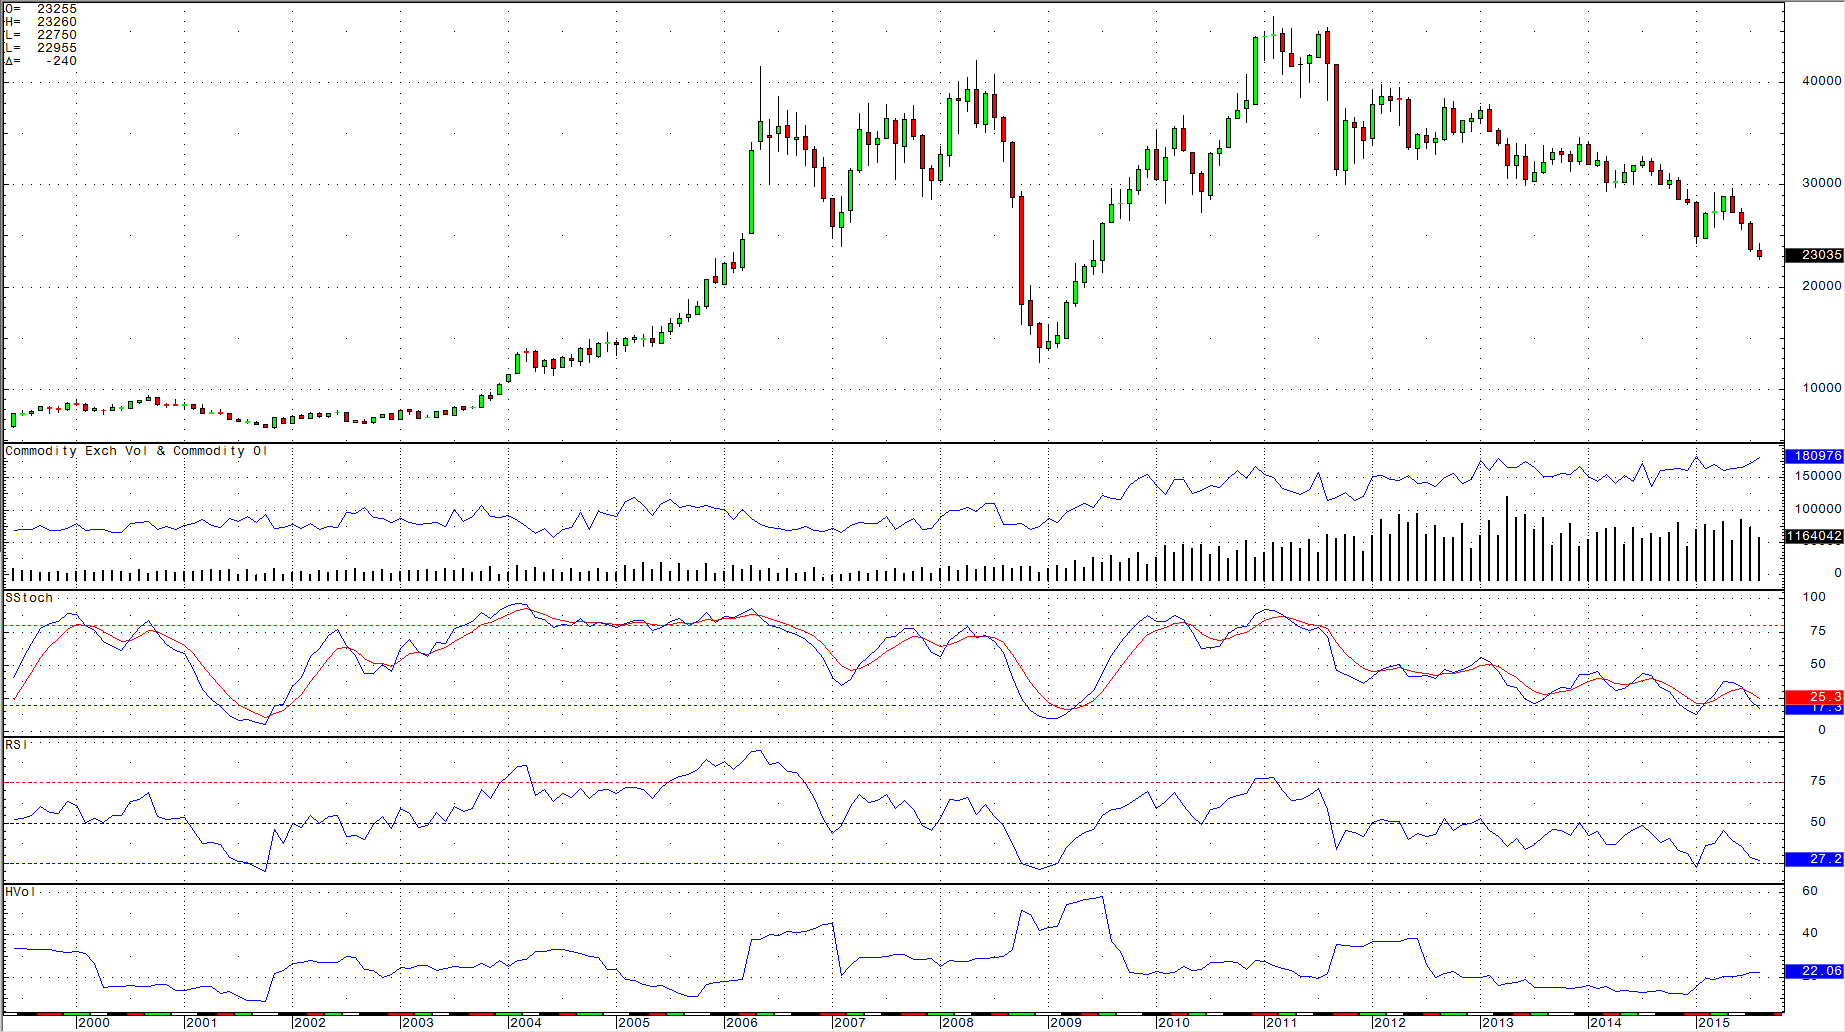 A Picture Is Worth Thousand Words And The Monthly Chart Of Comex Copper Futures Contract Tells Story